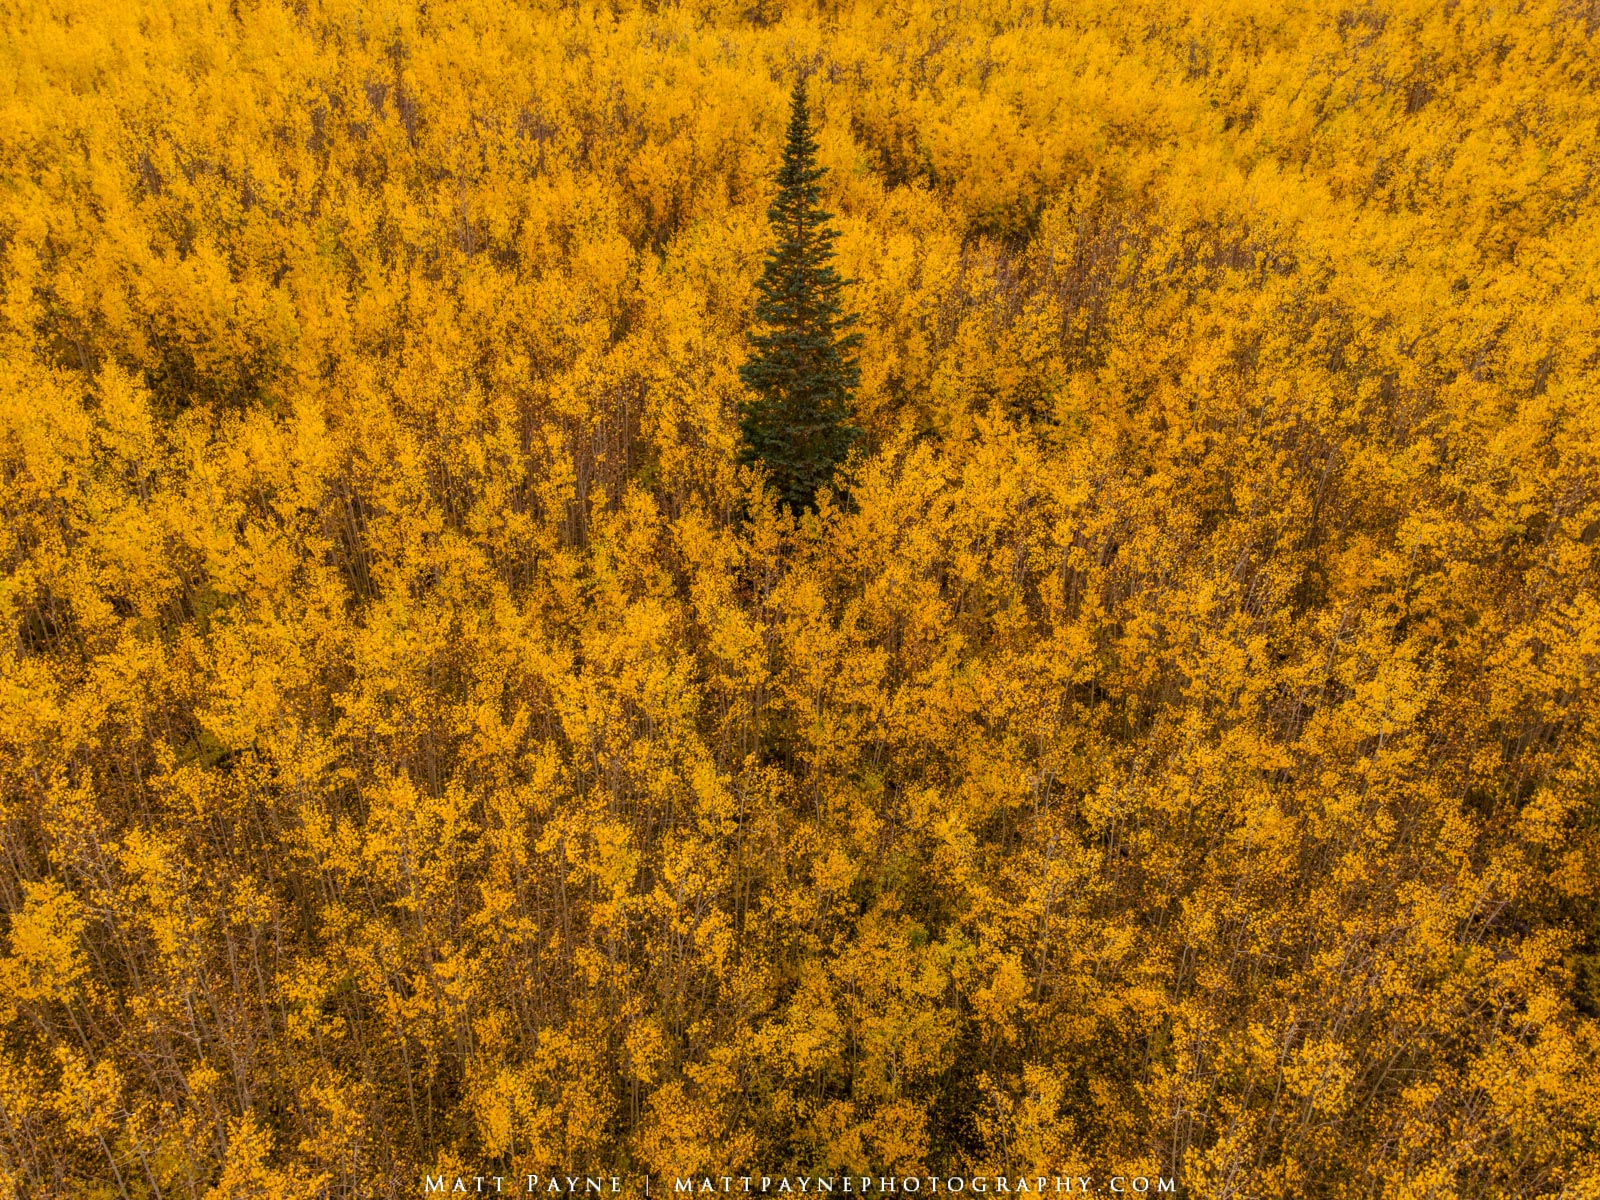 Aspen Trees, Autumn, Colorado, Ecology, Fall, Fall Colors, Forest, Landscape, Nature, aspen leaves, Landscape Photography, photo